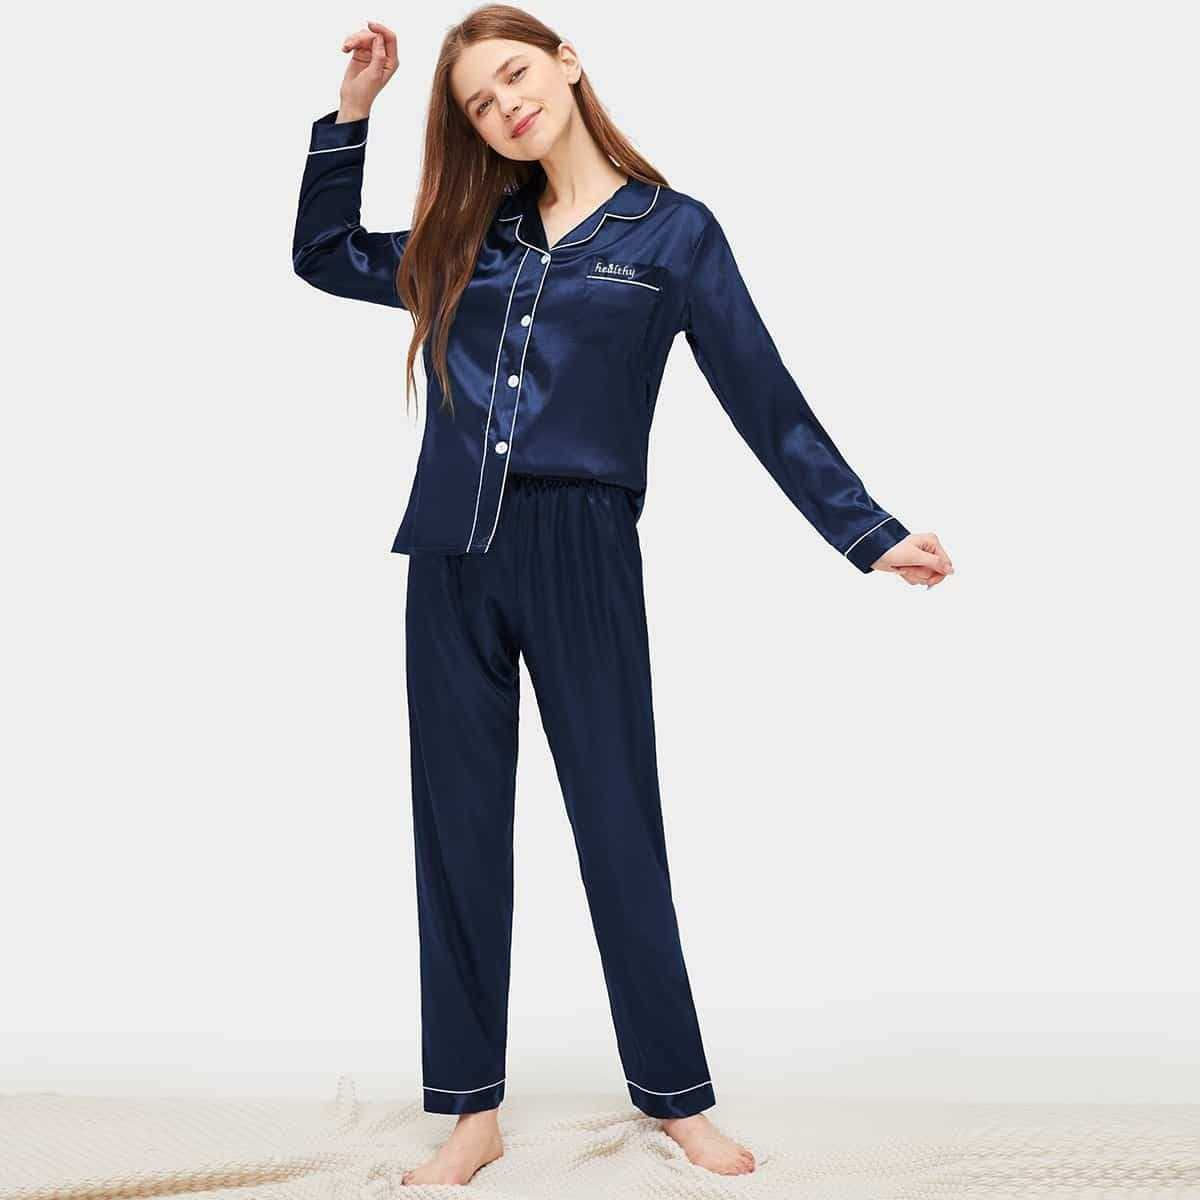 Contrast Binding Button-up Satin Pajama Set in Navy by ROMWE on GOOFASH